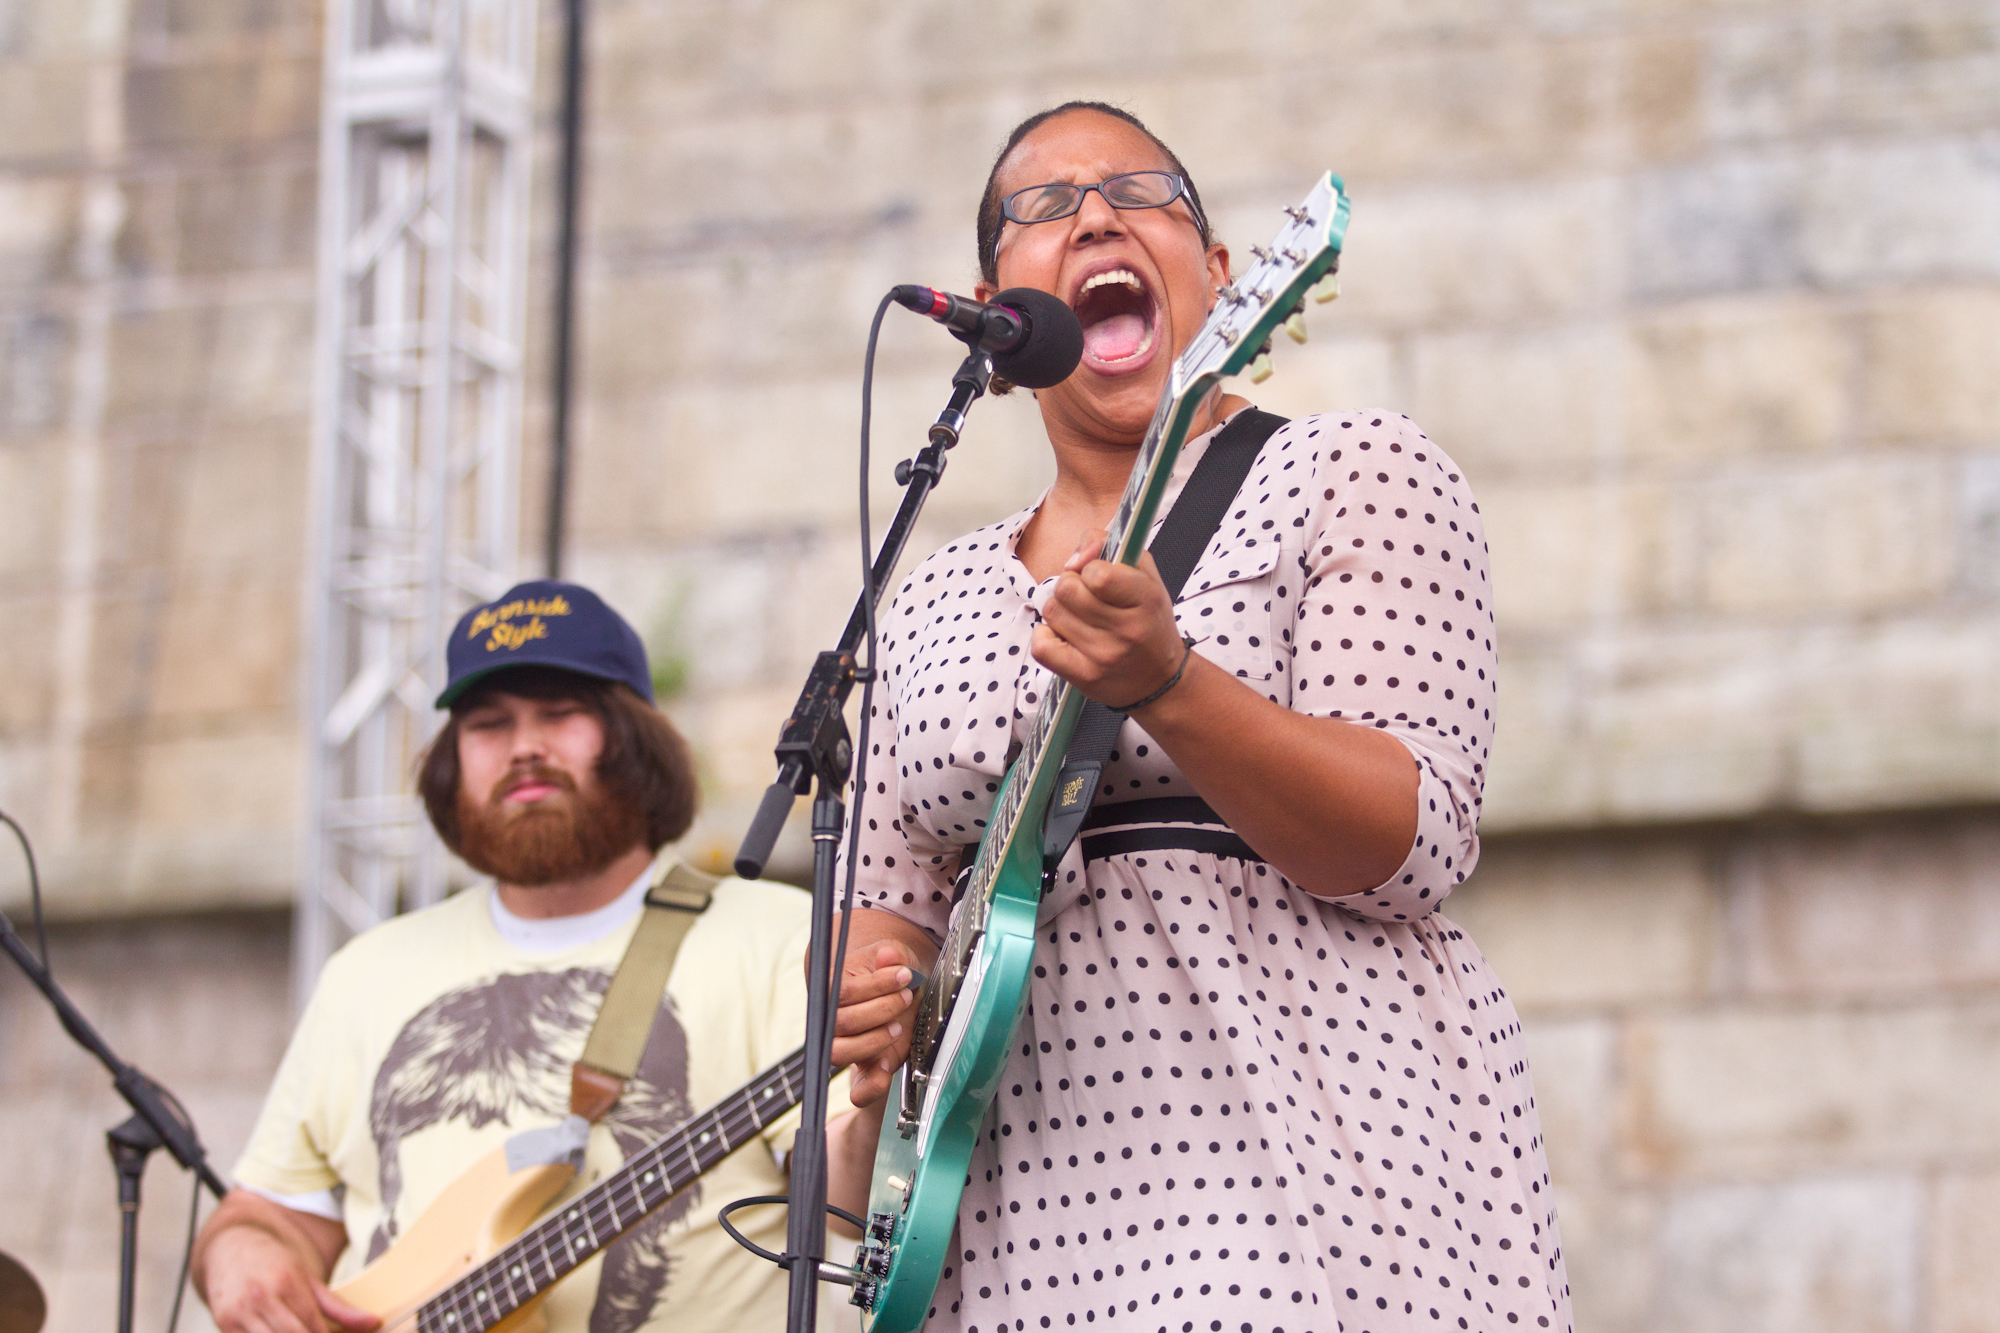 At Newport, Alabama Shakes' music reached ecstatic, rafter-shaking heights with singer Brittany Howard dominating the proceedings.